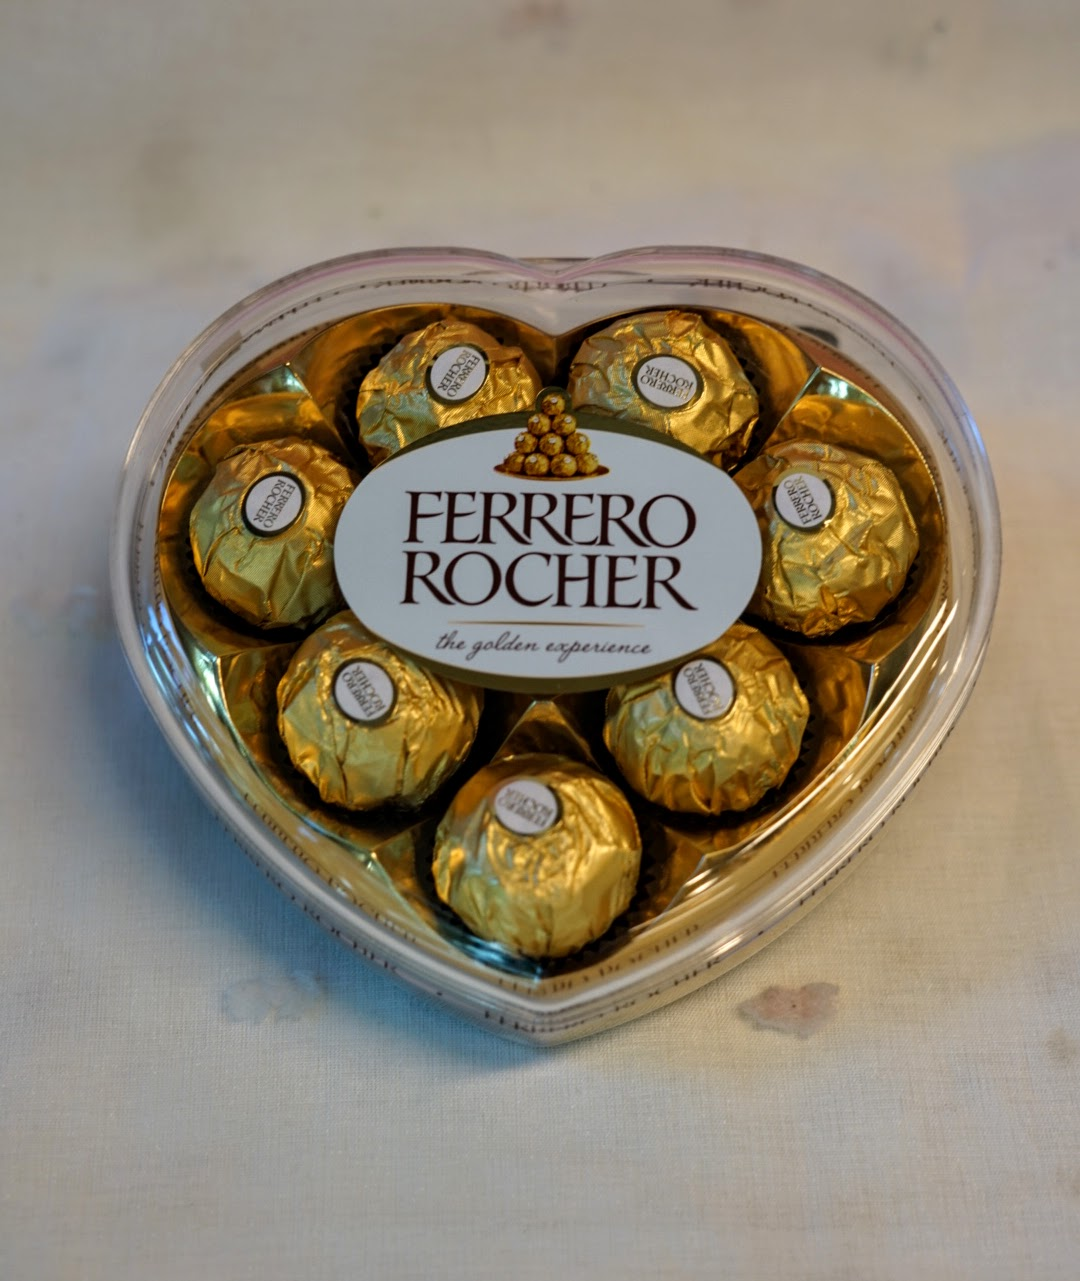 Ferrero Rocher Heart   Flower, Chocolate, snacks and gift delivery in Seoul  and South Korea - Korea's most trusted online flower and gift store with  English service and 350+ reviews